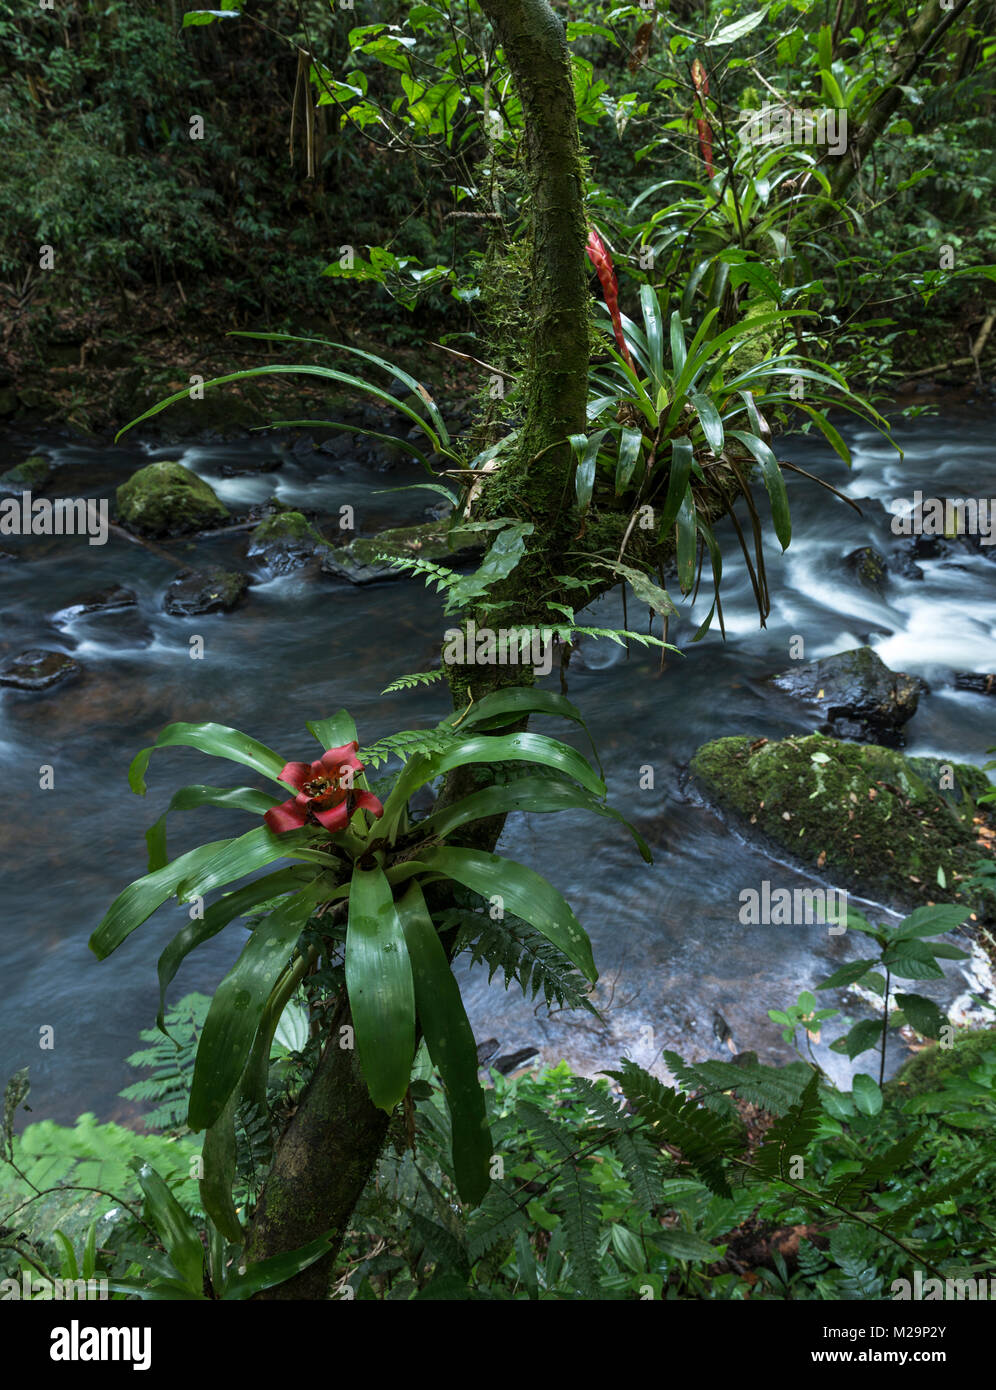 Bromeliads in the Atlantic Rainforest - Stock Image